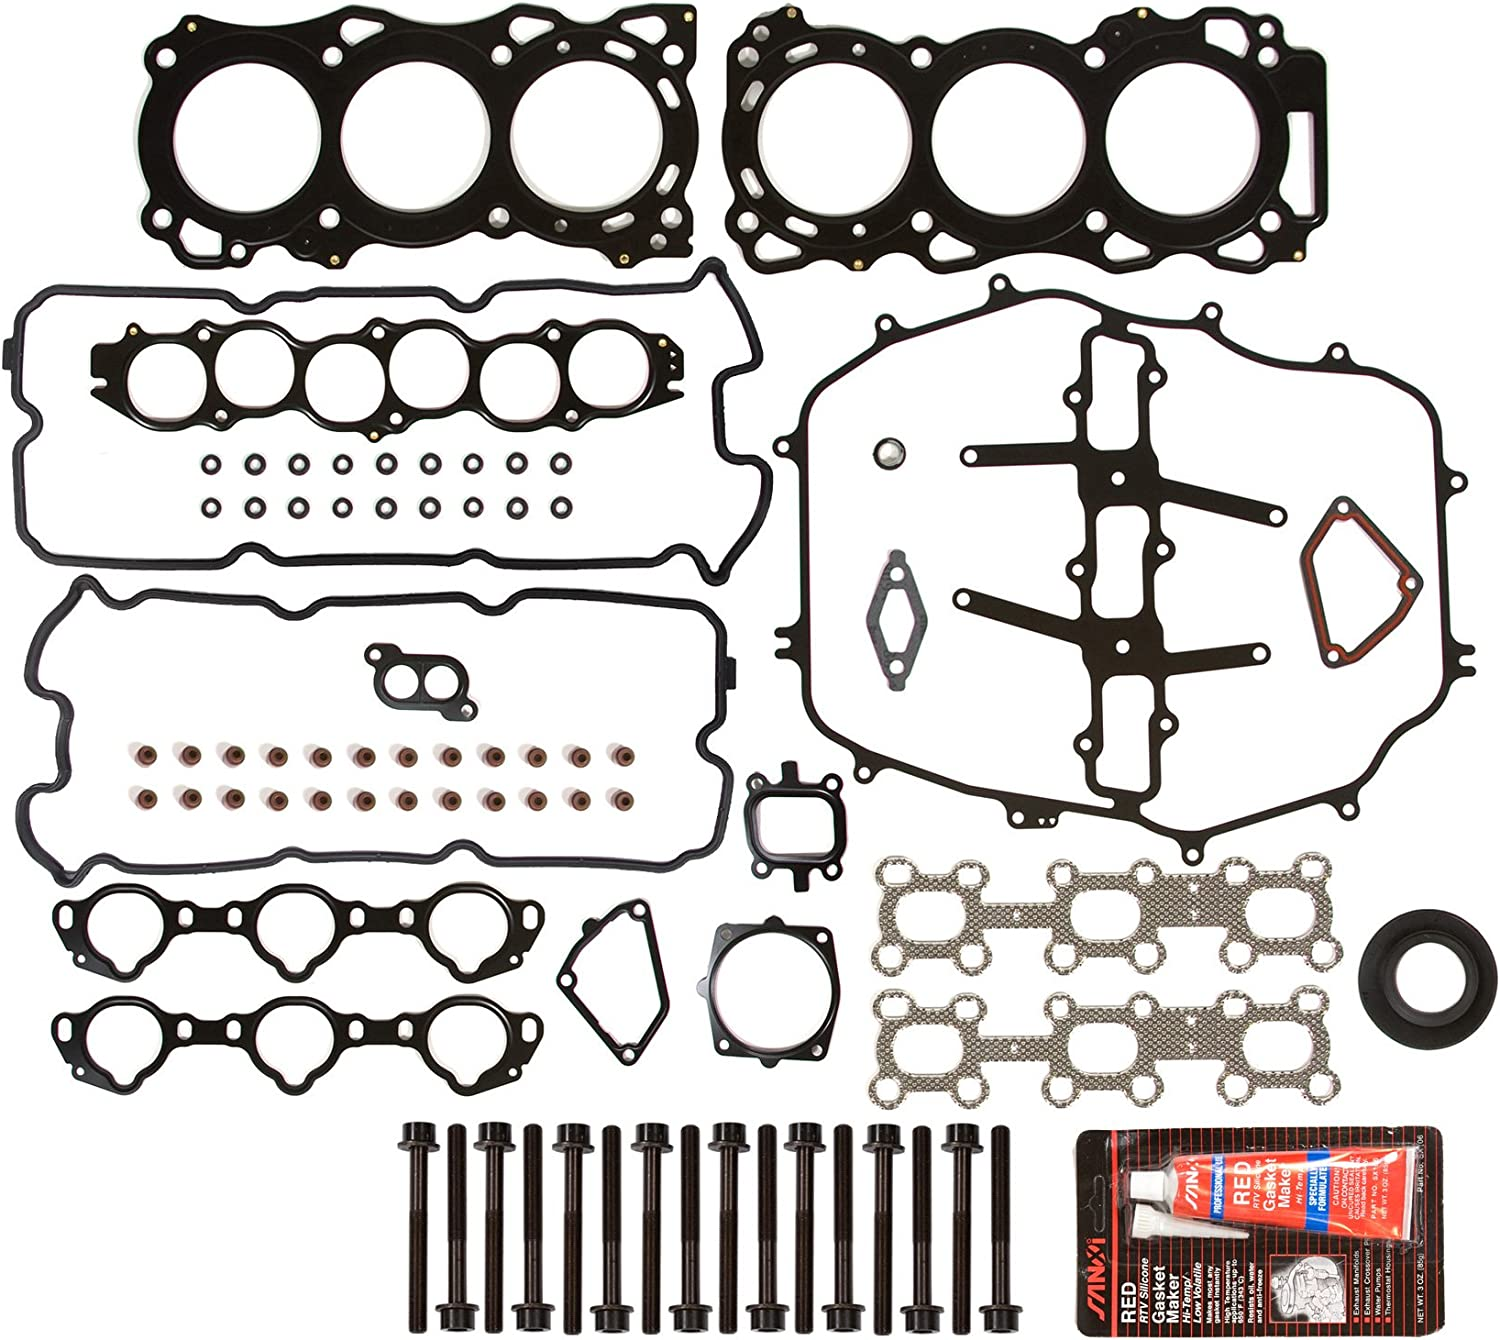 Evergreen HSHB3035 Challenge the lowest price Cylinder Head Bolt Special price Gasket Set